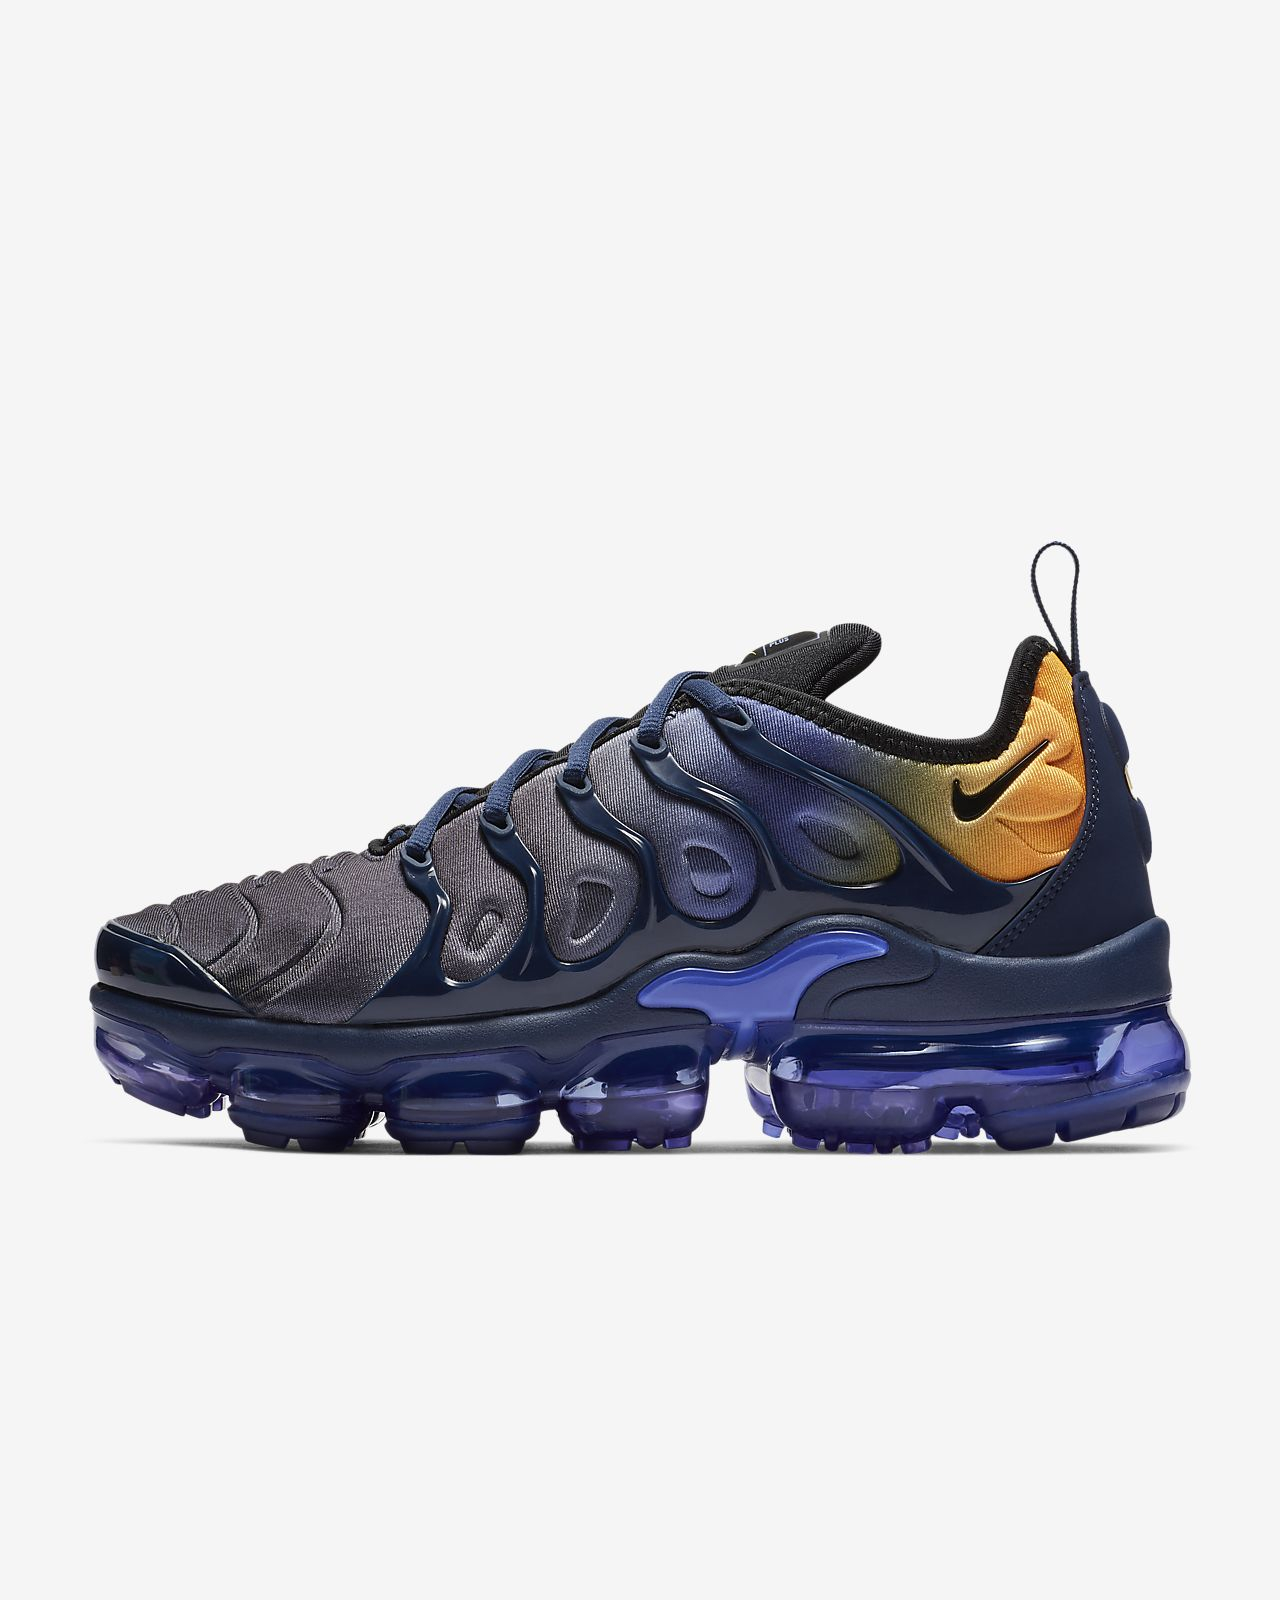 821bcc46c44e Nike Air VaporMax Plus Women s Shoe. Nike.com